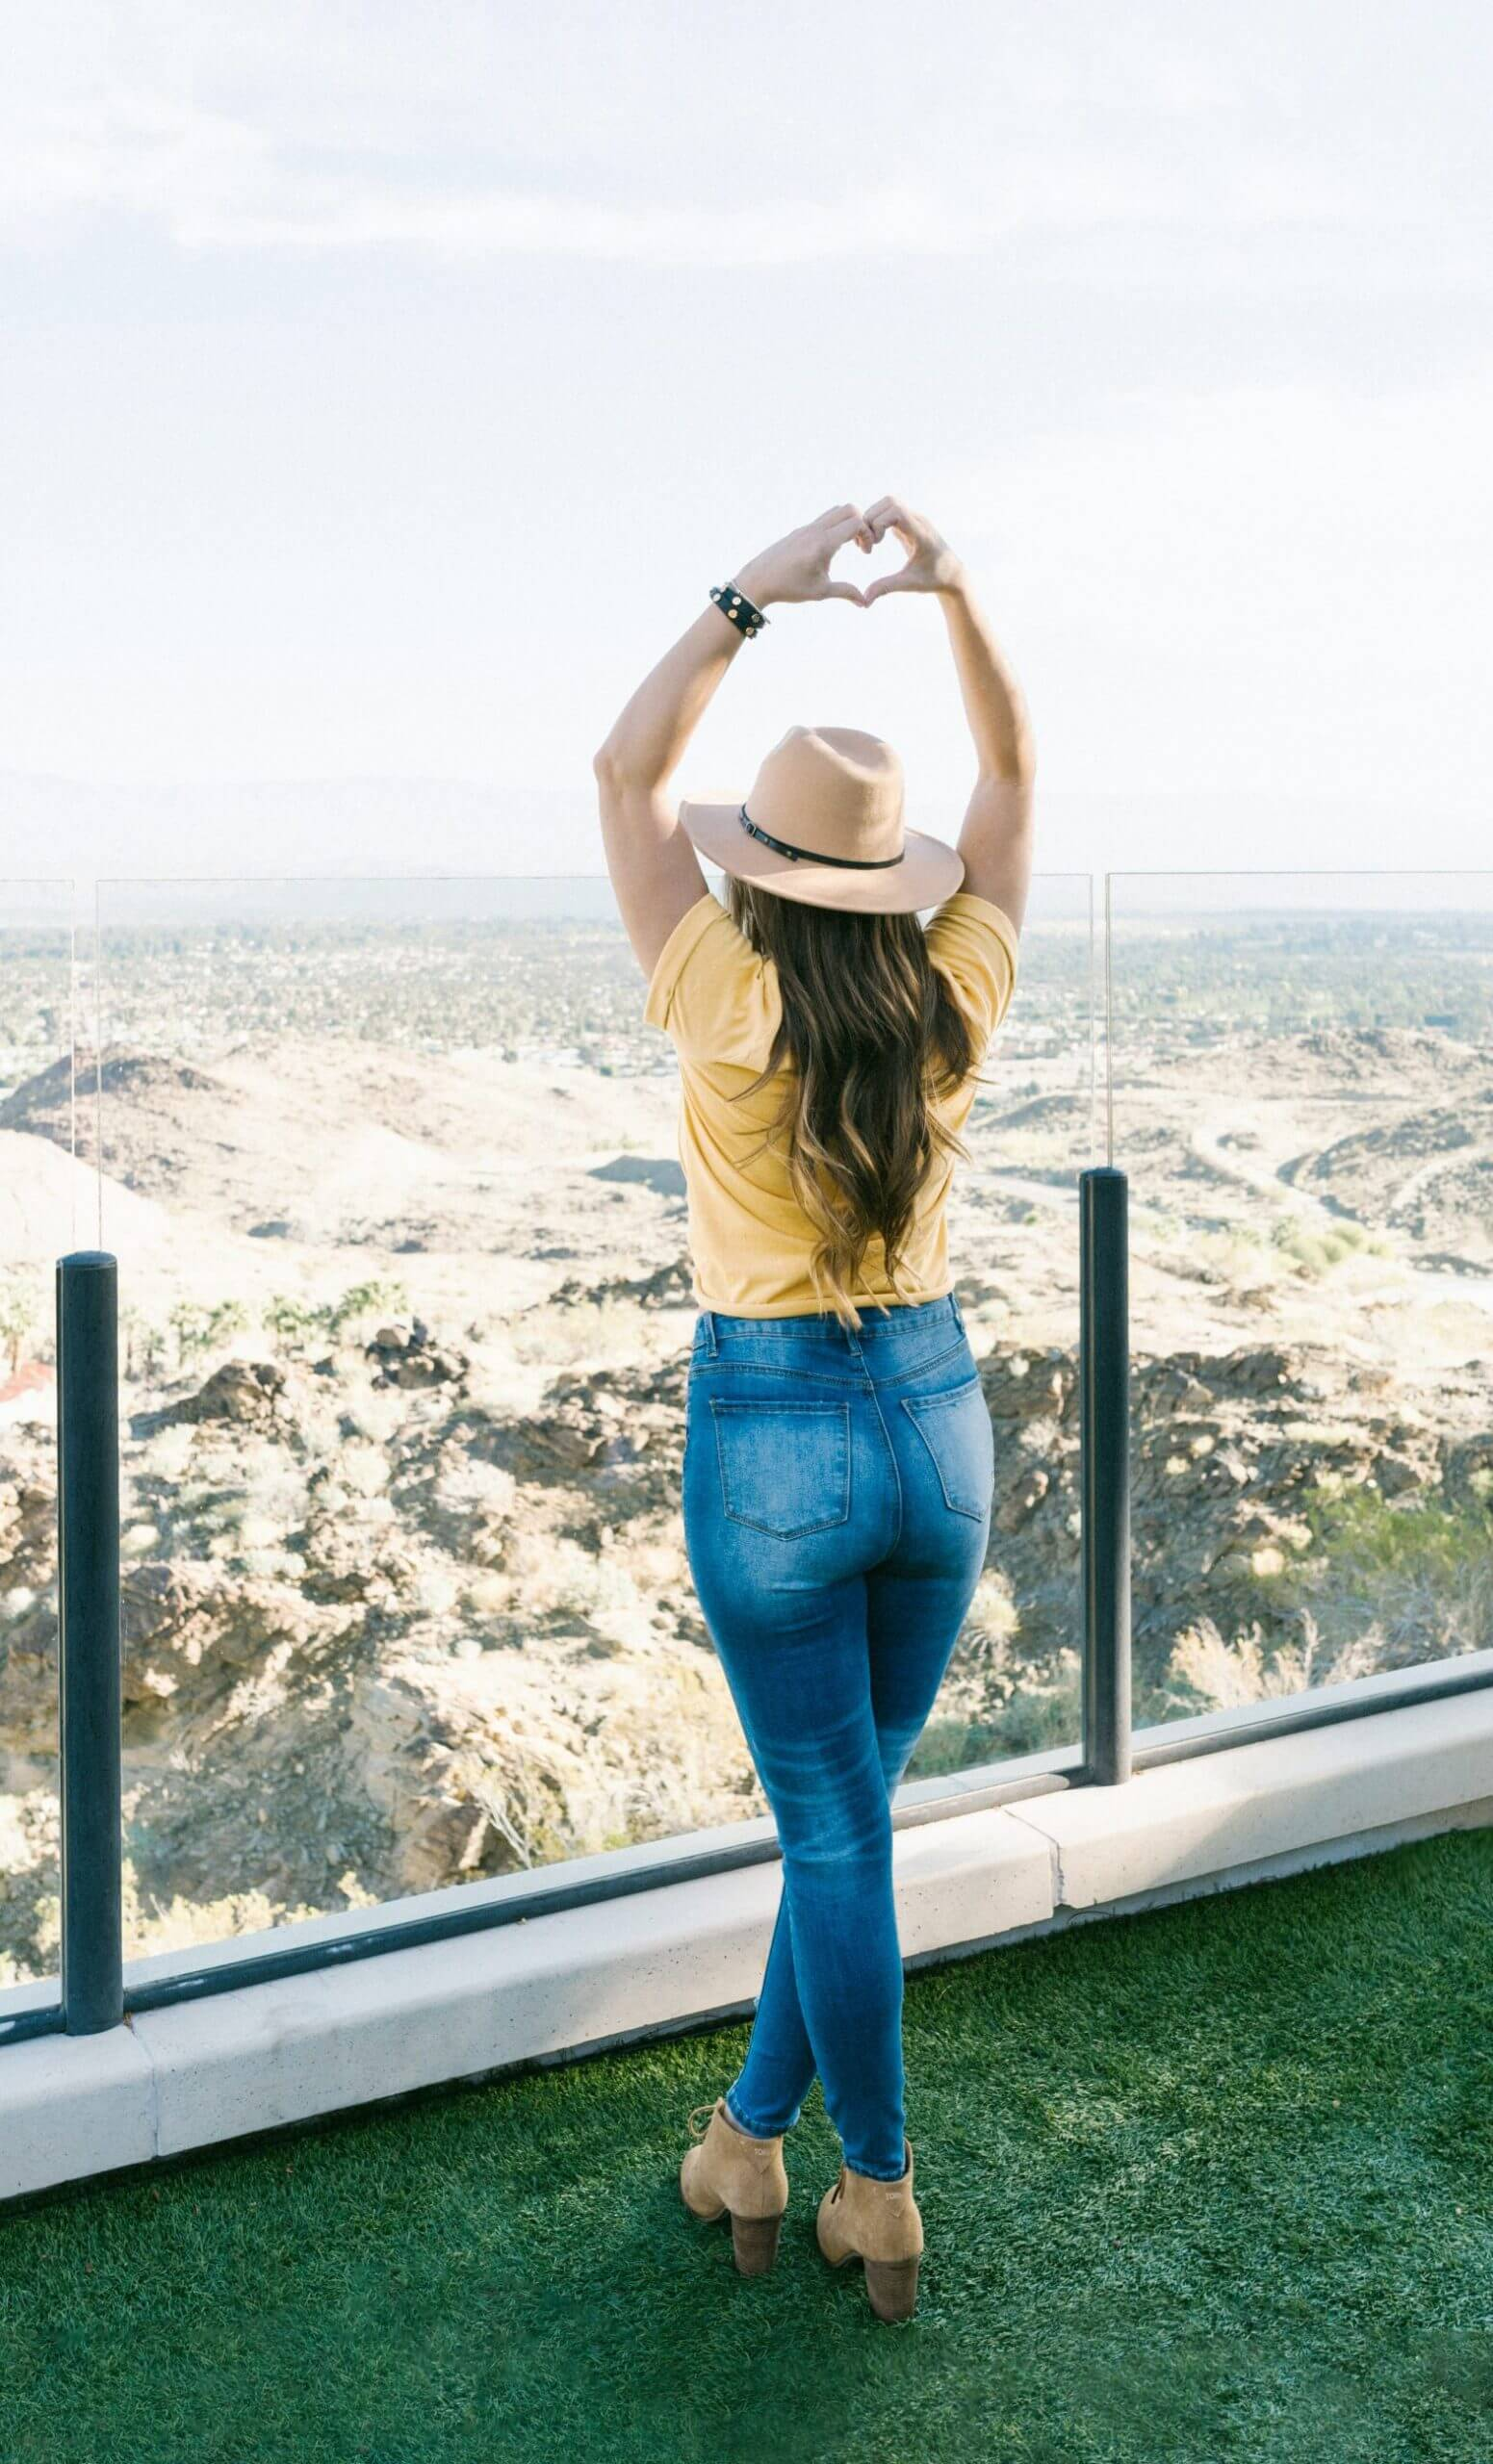 10 Ways To Successfully Invest In Yourself